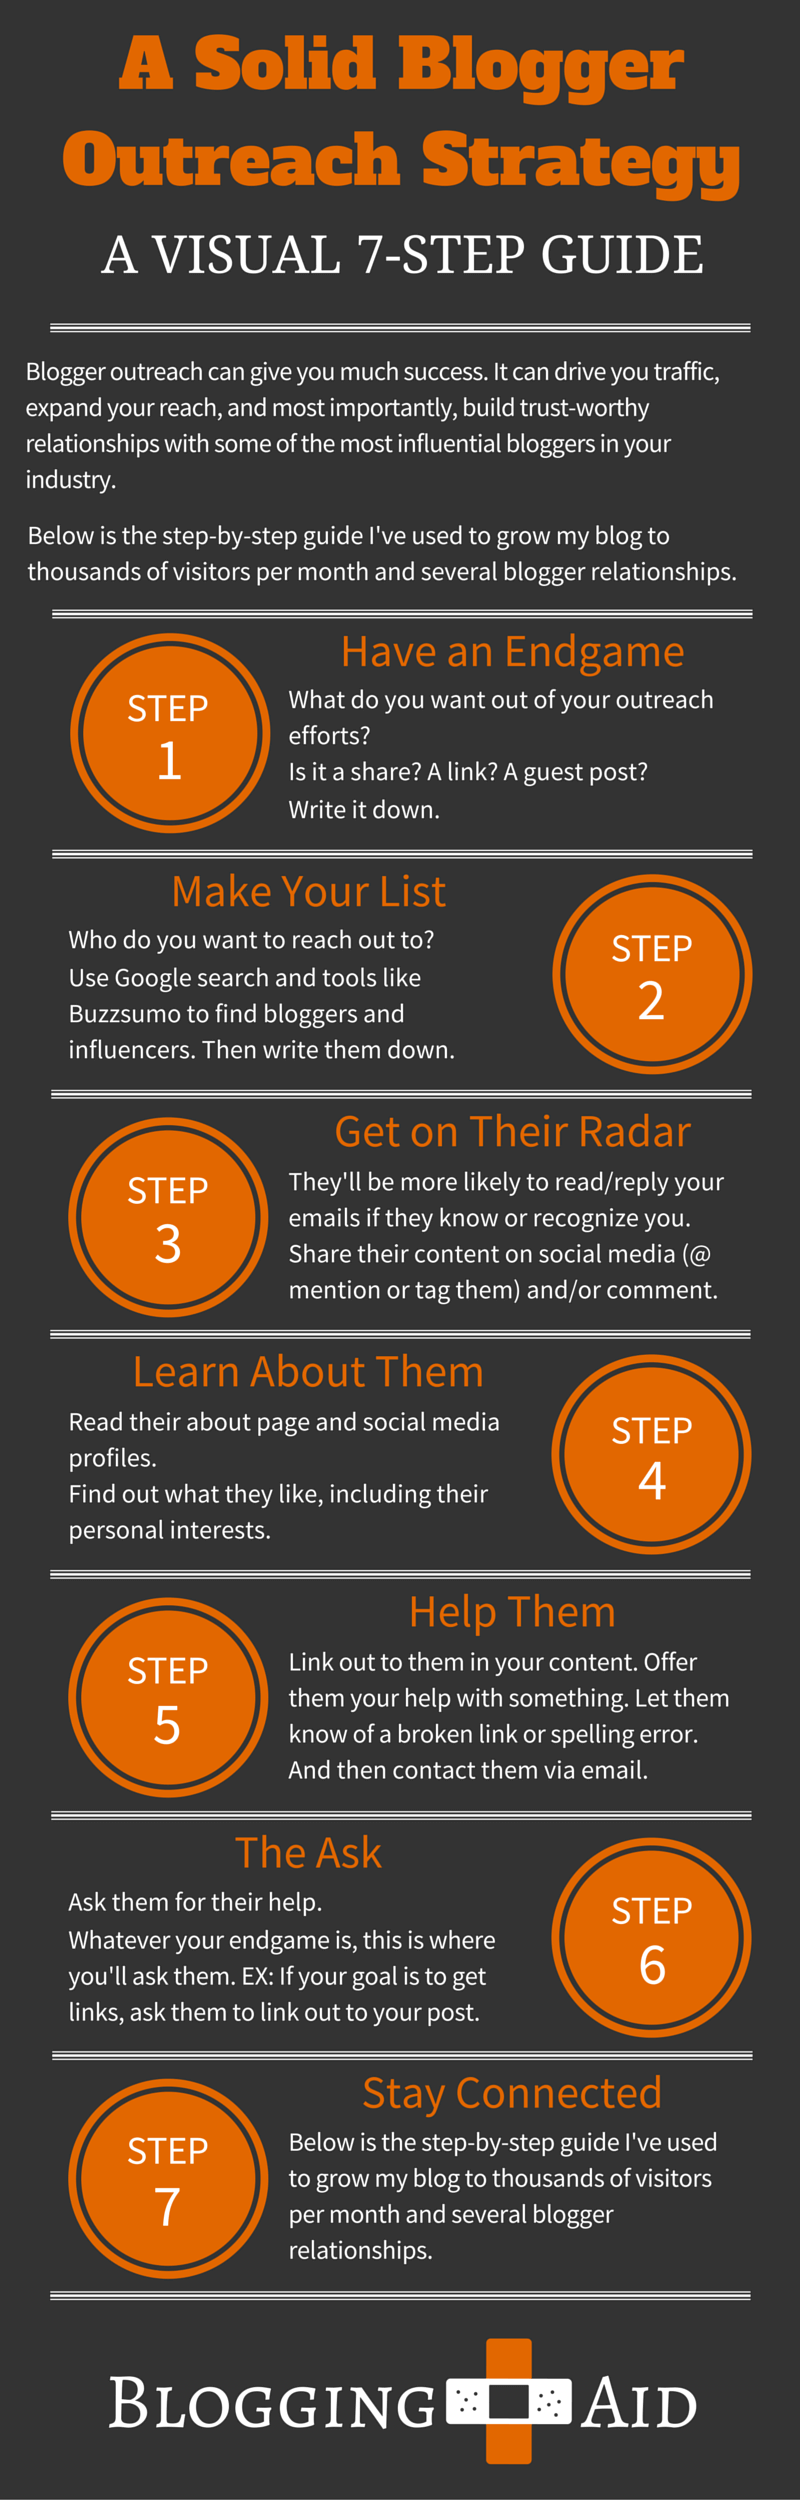 Blogger Outreach Strategy Infographic